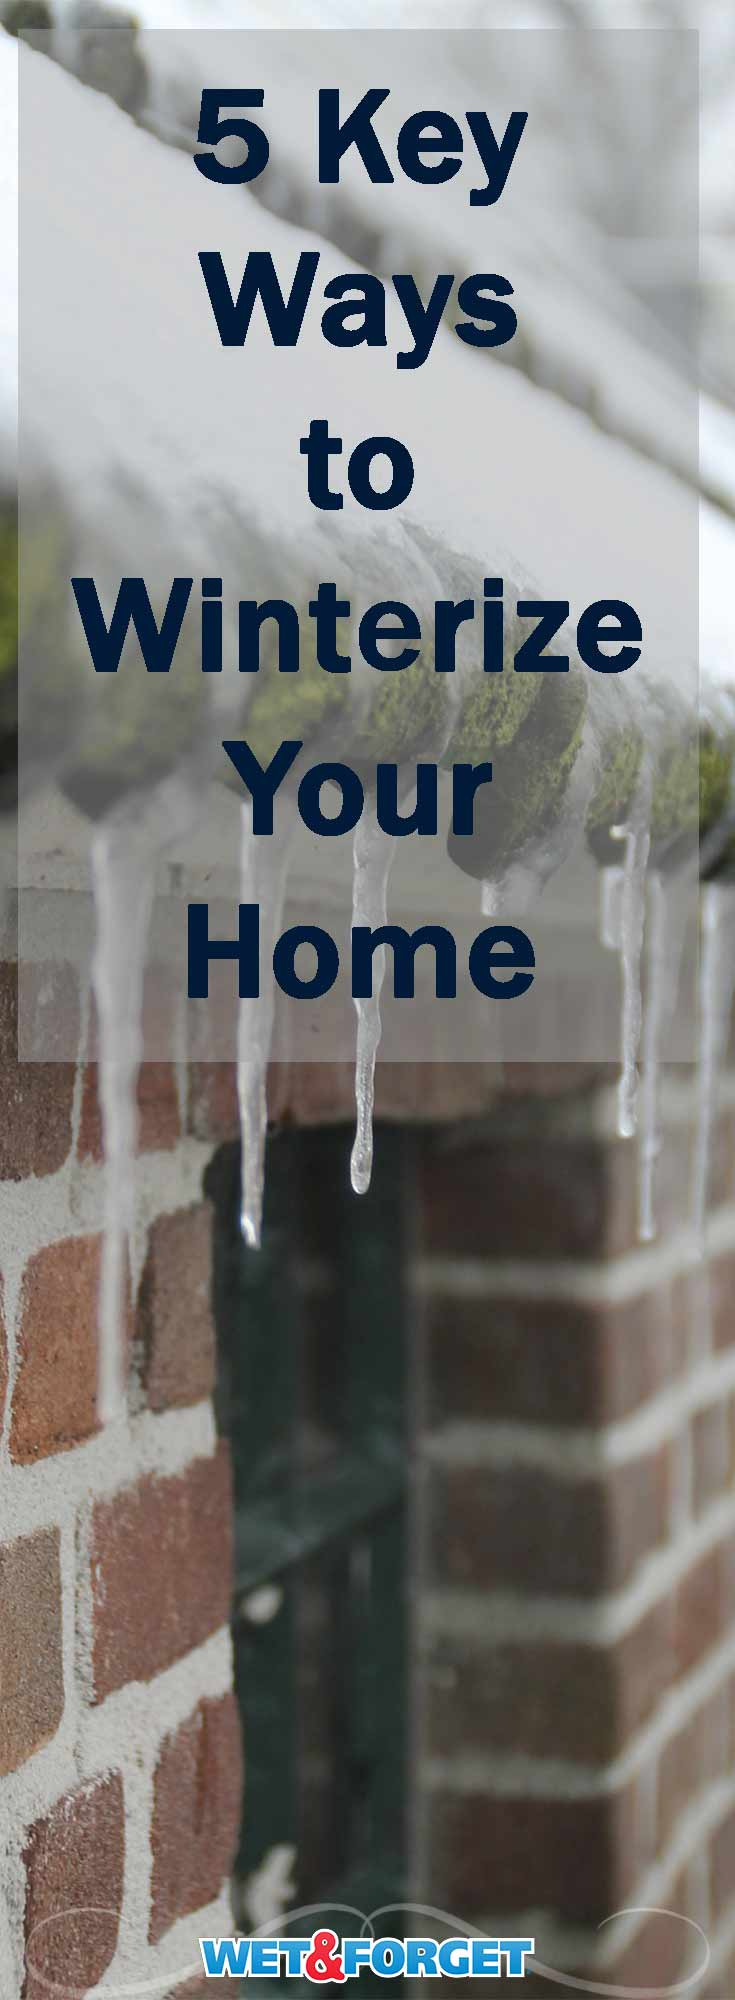 Winterize your home before the bitter cold temperatures roll in! These keys will keep your home warm and toasty throughout the season.